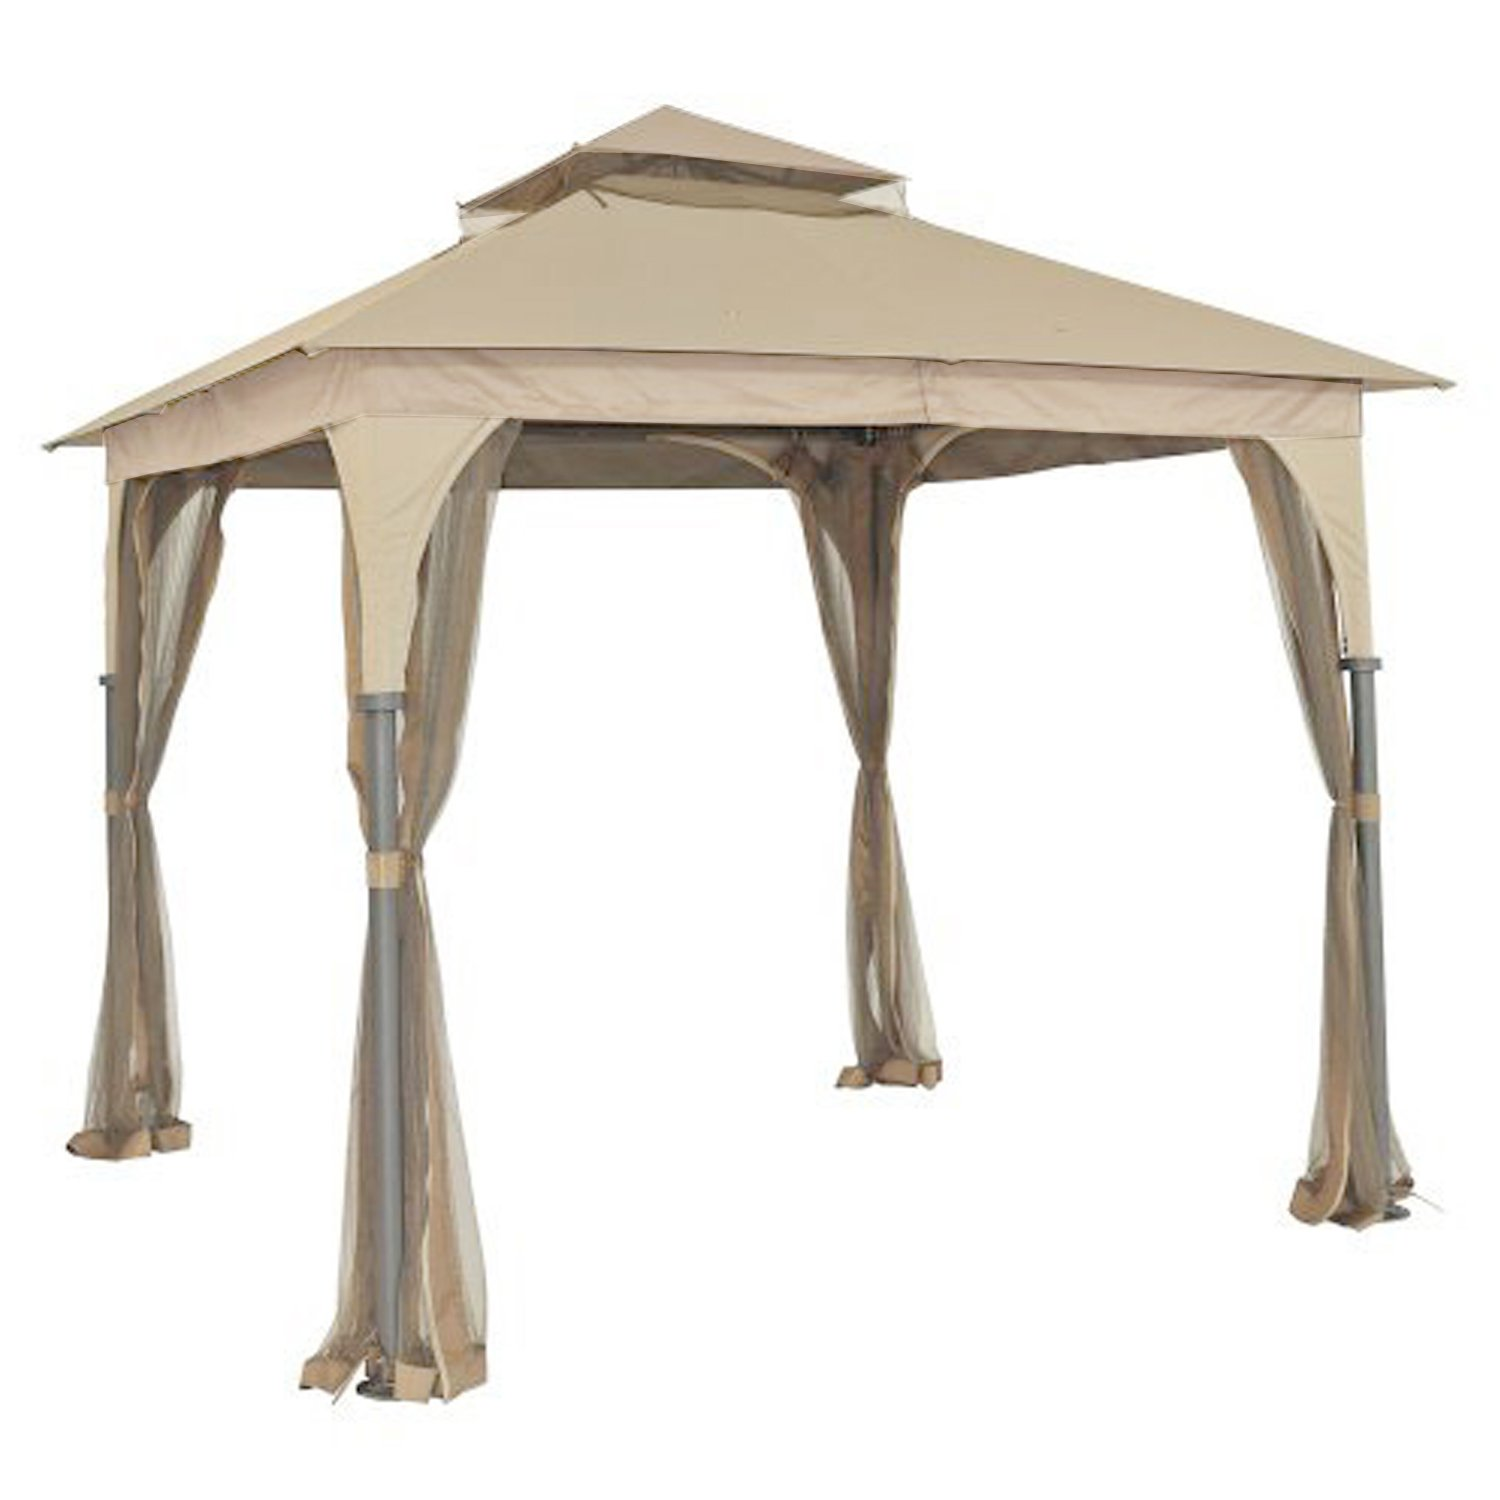 Garden Winds Replacement Canopy for L-GZ375PST-3 Gazebo - 350